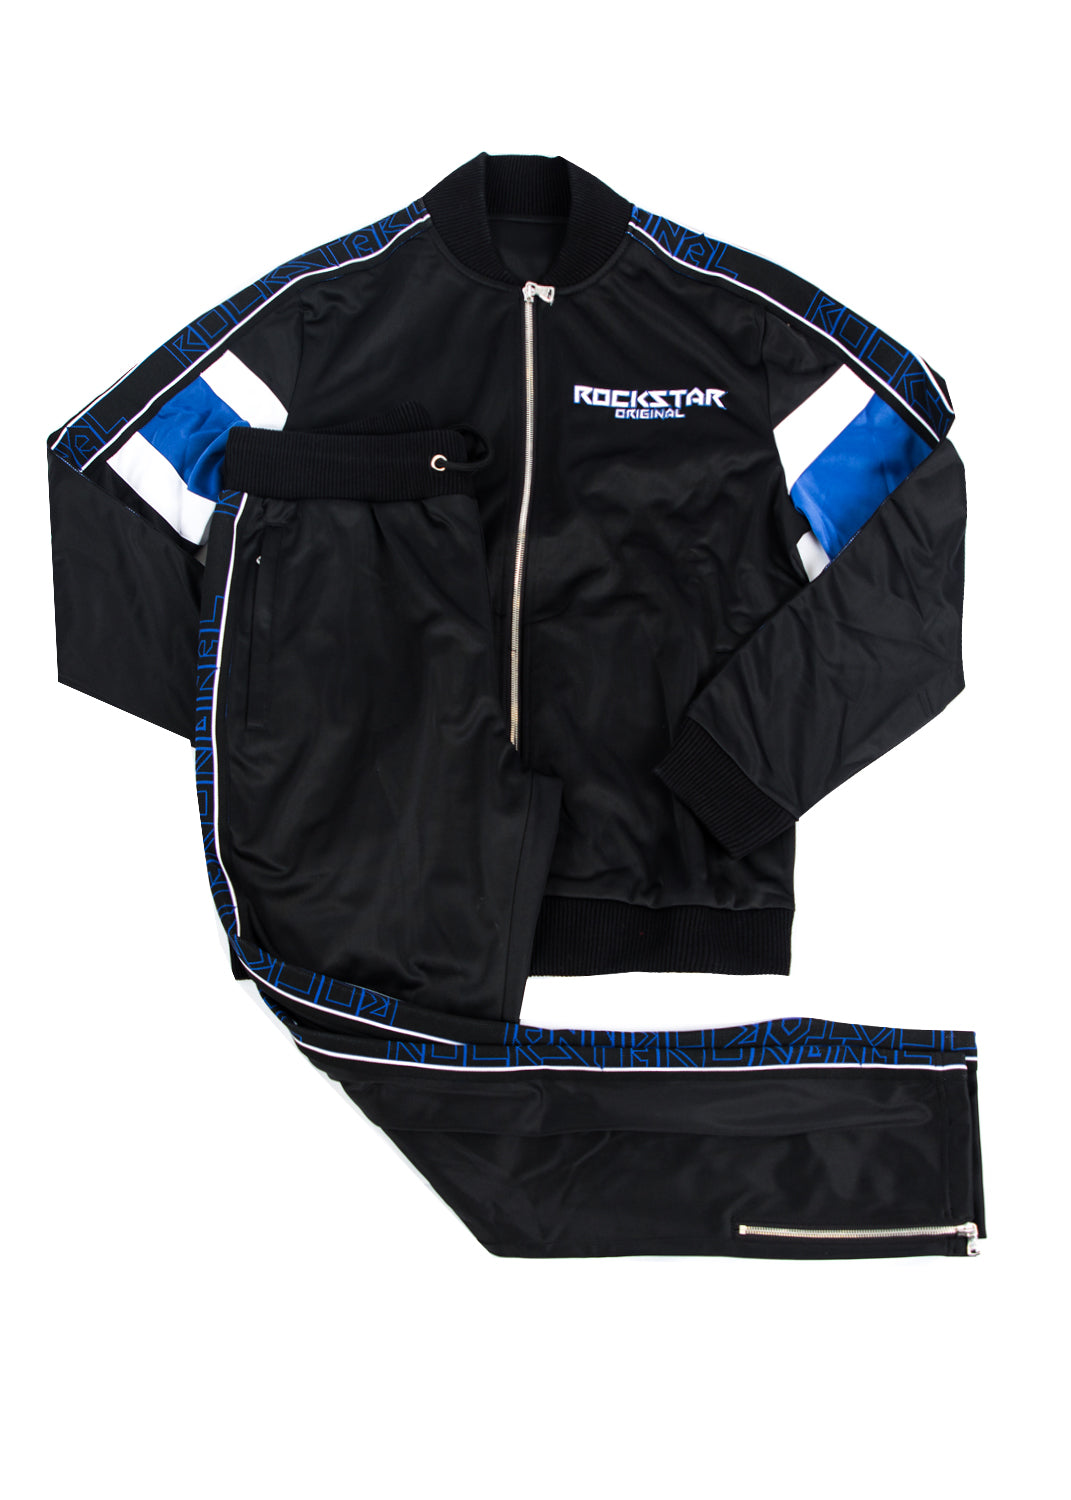 Beck 3.0 (Black) Track Suit